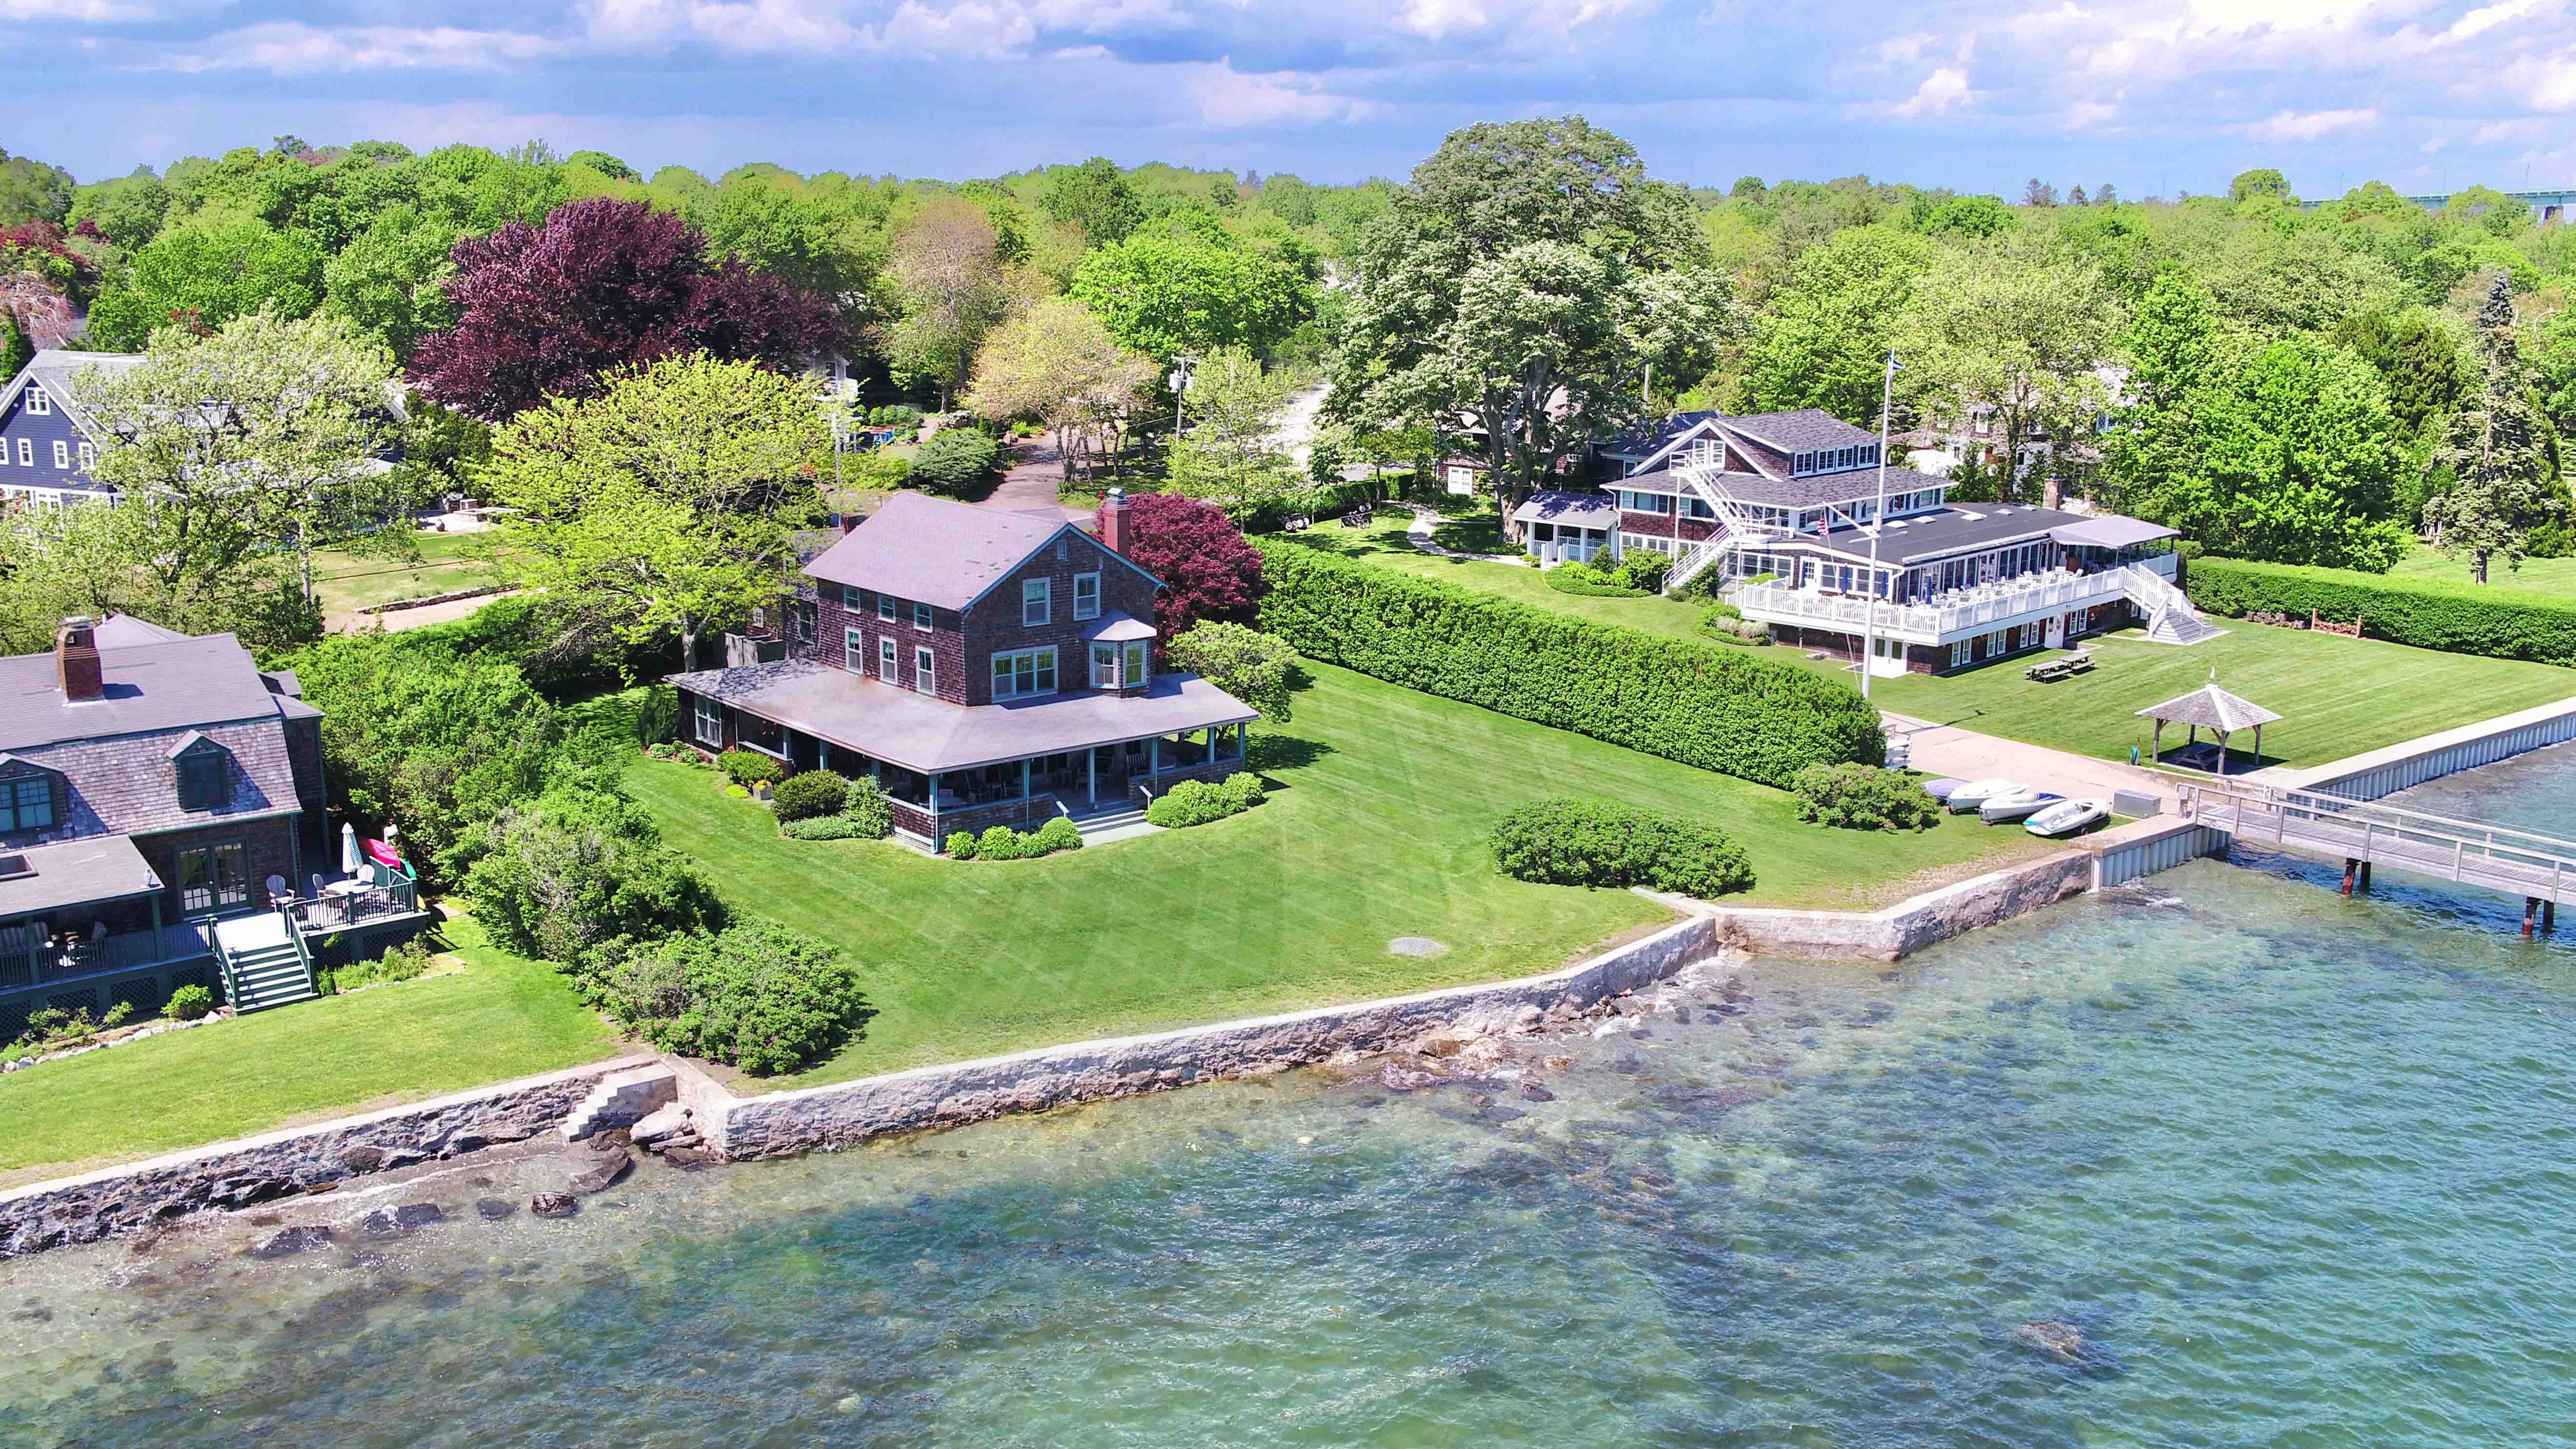 """LILA DELMAN REAL ESTATE SELLS """"FOLLY HOUSE"""" FOR $3.75M, MARKING SECOND HIGHEST SALE IN JAMESTOWN THIS YEAR*"""